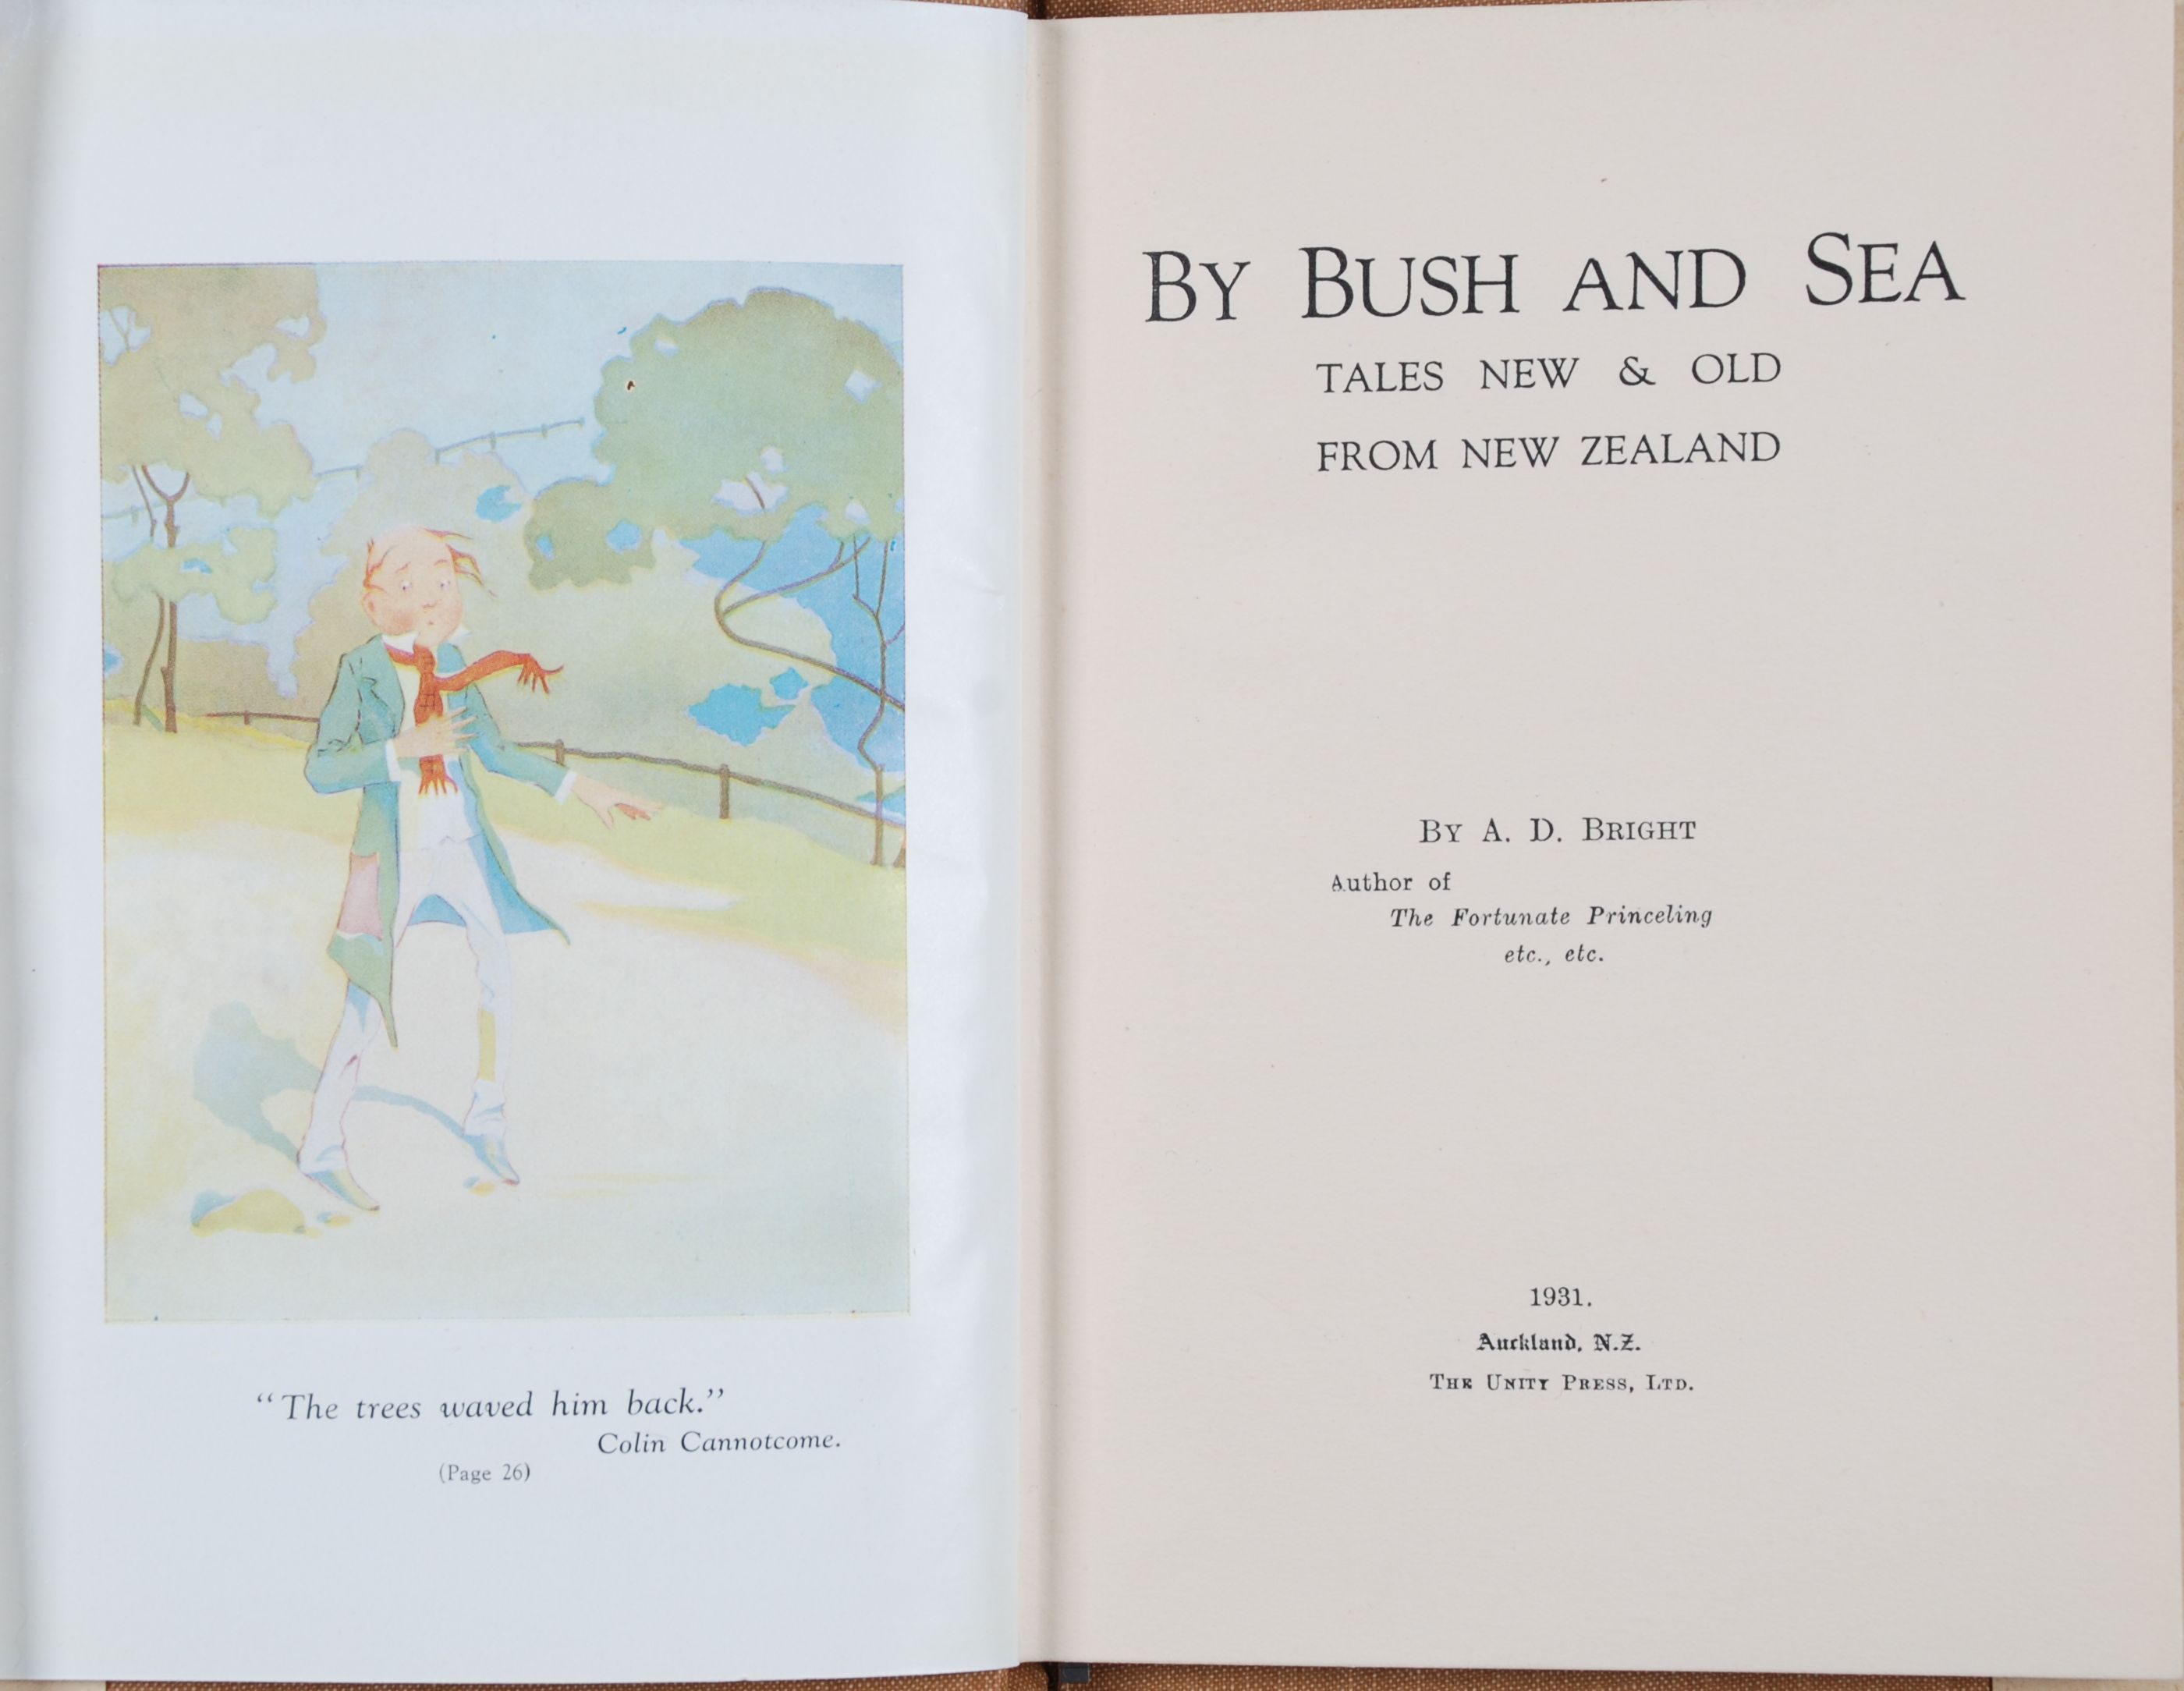 A.D. Bright. By bush and sea : tales old & new from New Zealand; illustrations by  Kennaway and Frank Wright. Auckland, N.Z.: Unity Press, 1931.